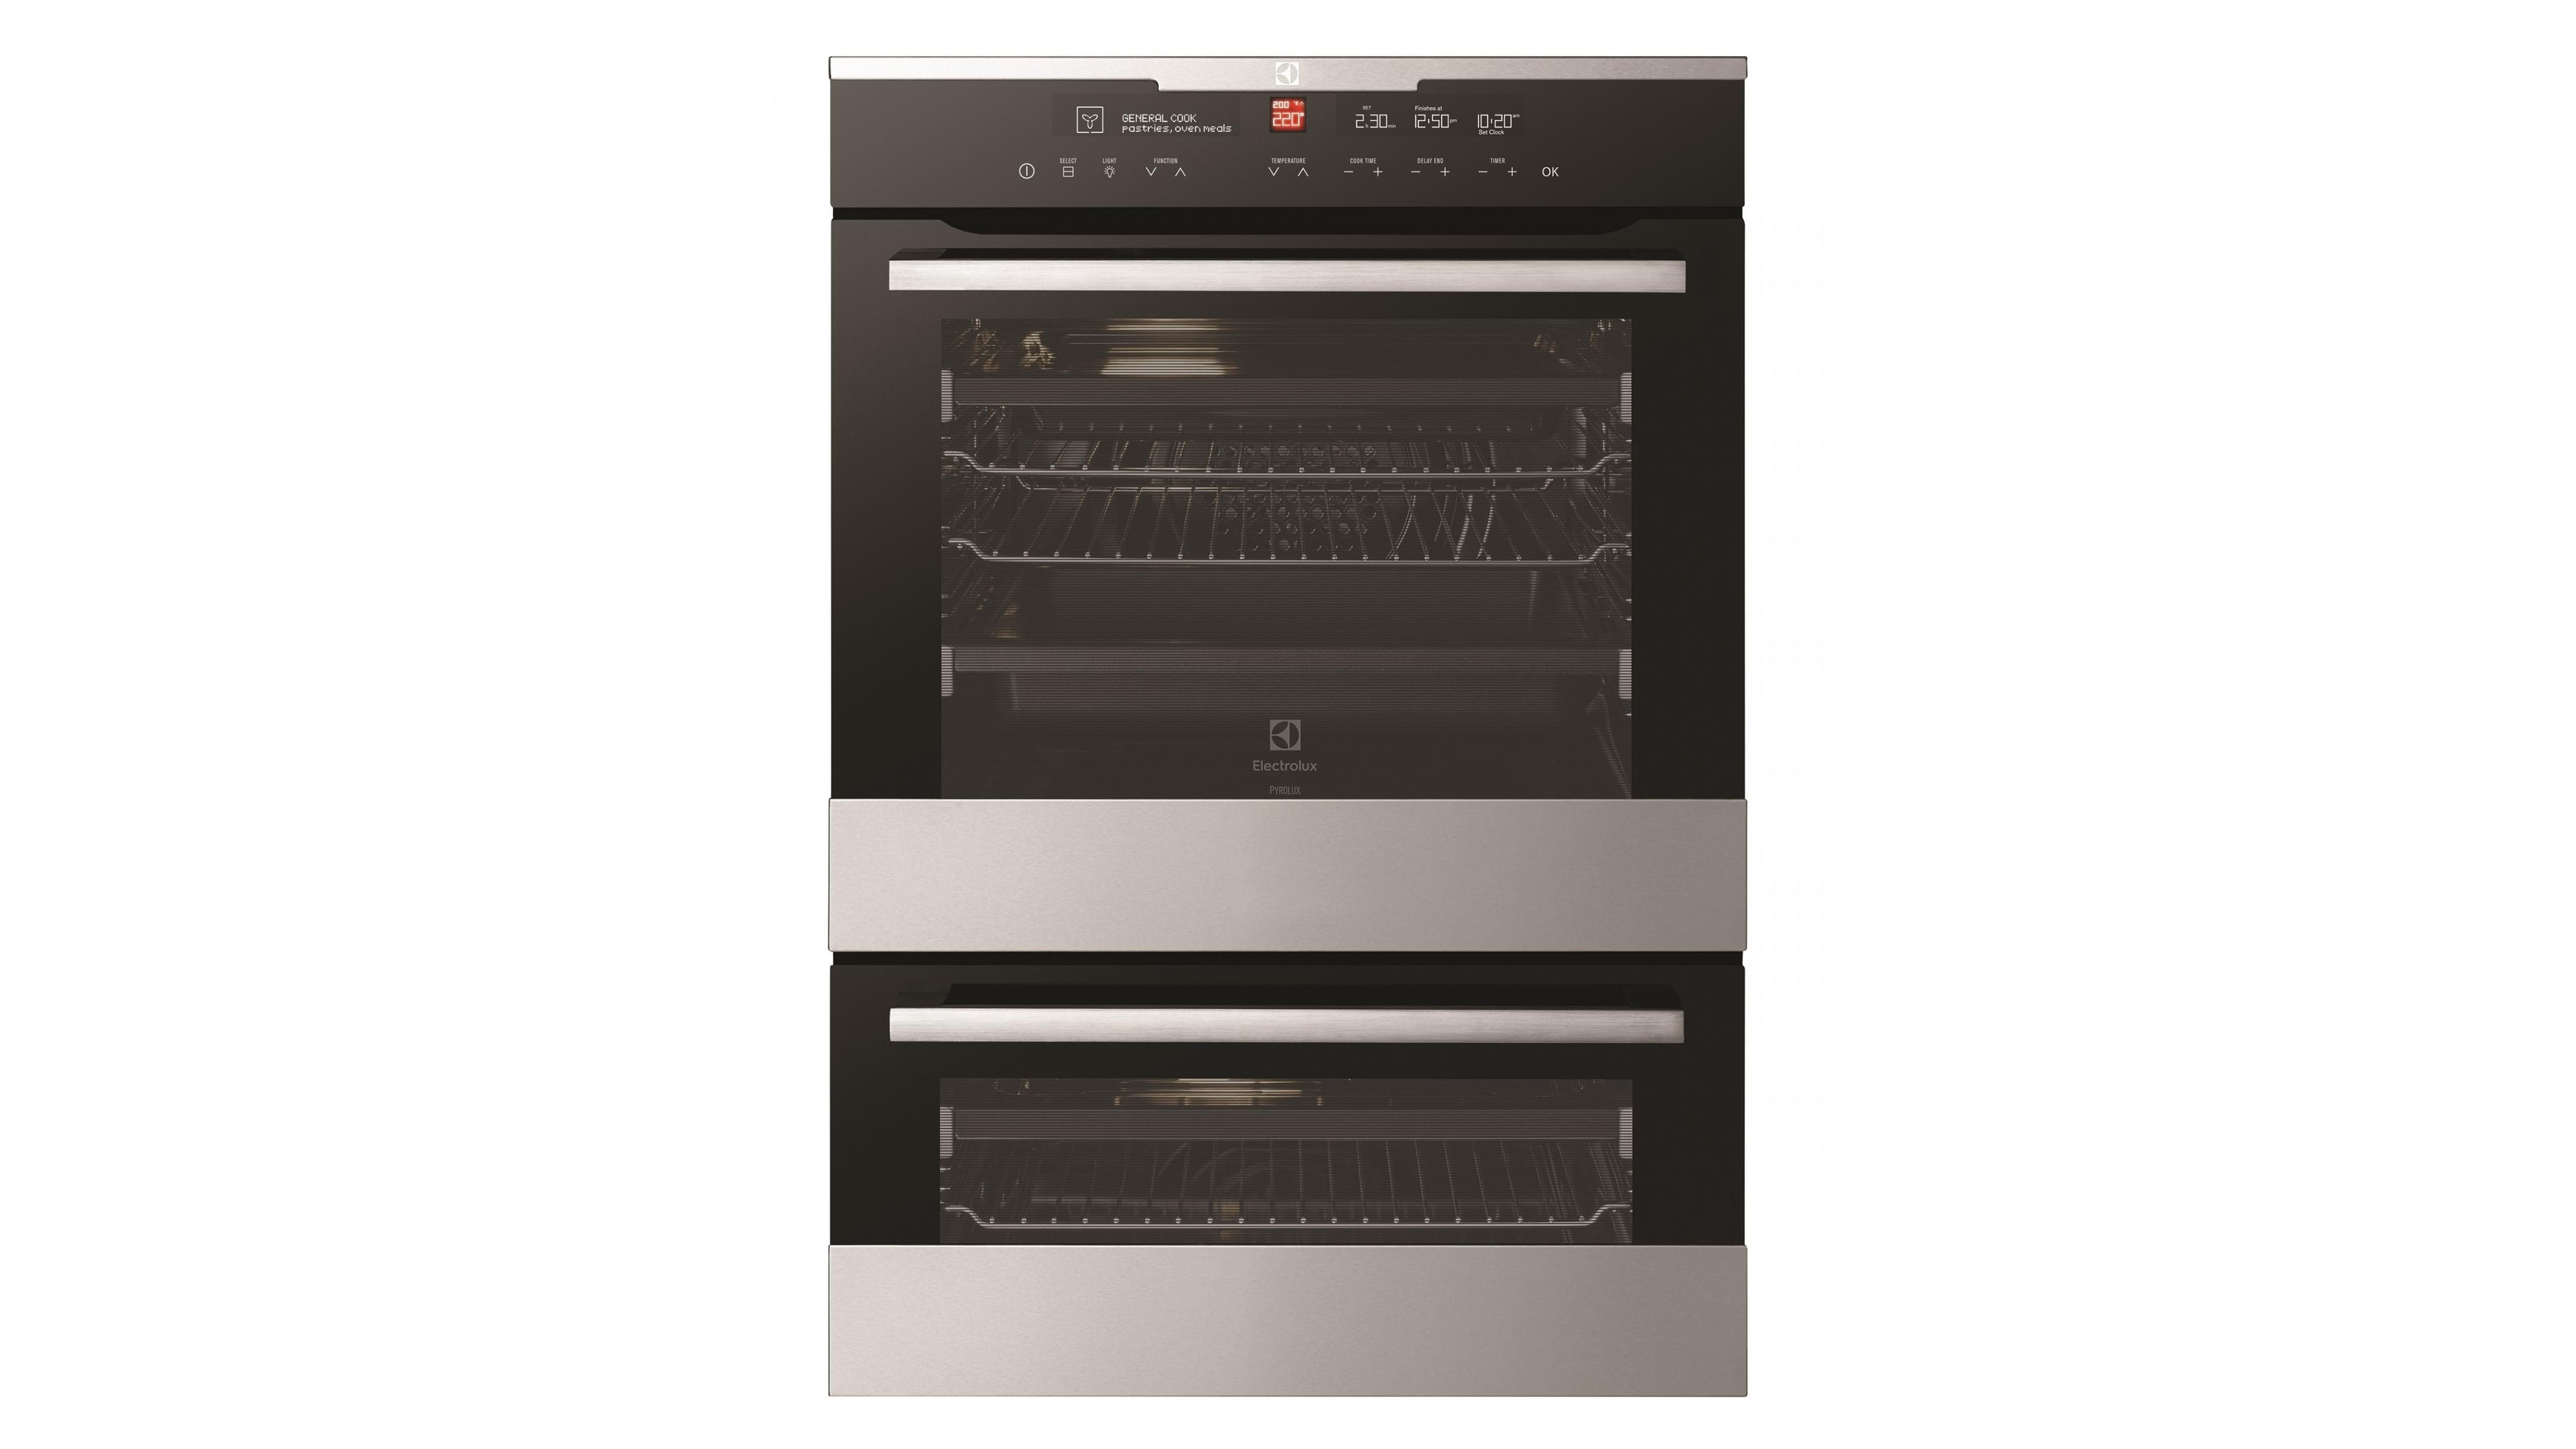 Electrolux 60cm Pyroluxe Duo Multi Function Oven | Domayne